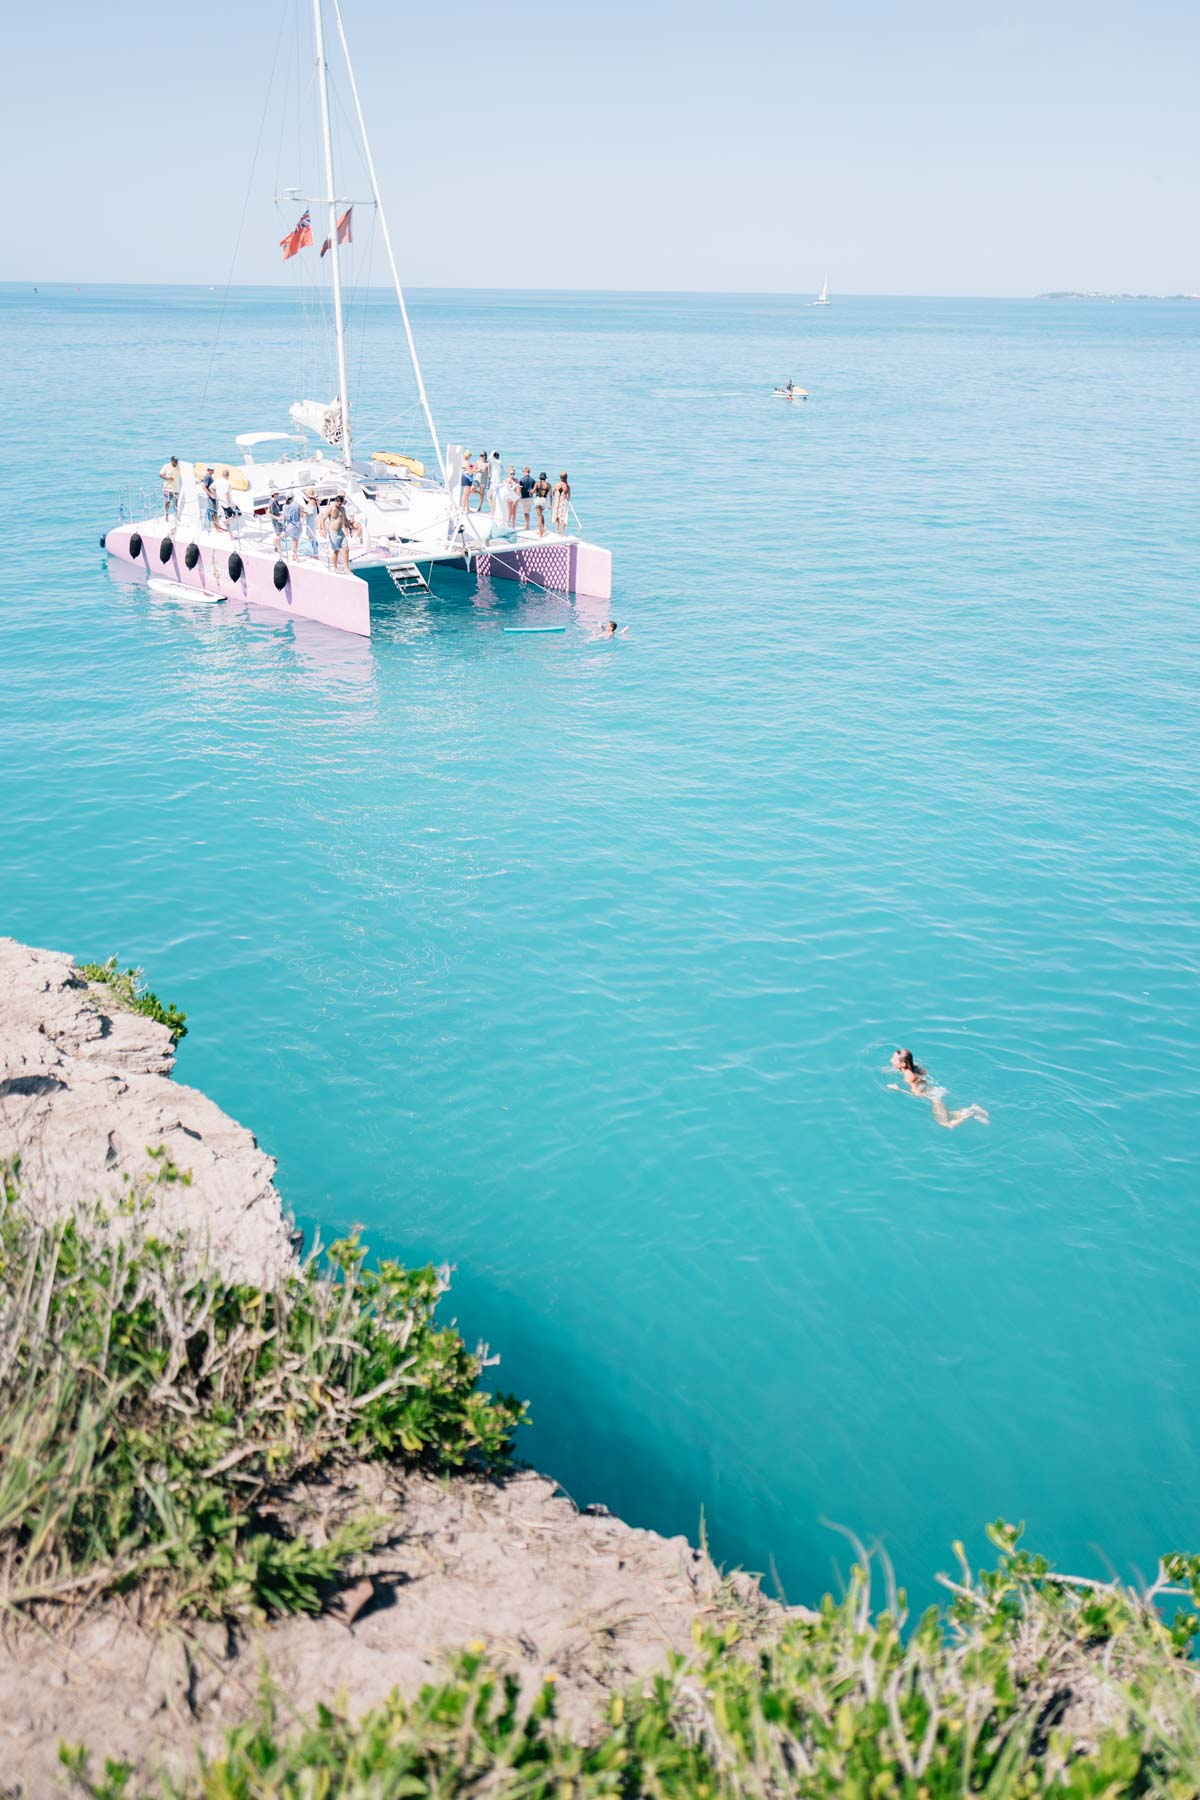 Jess Ann Kirby goes Cliff Jumping at Admiralty Park in Bermuda